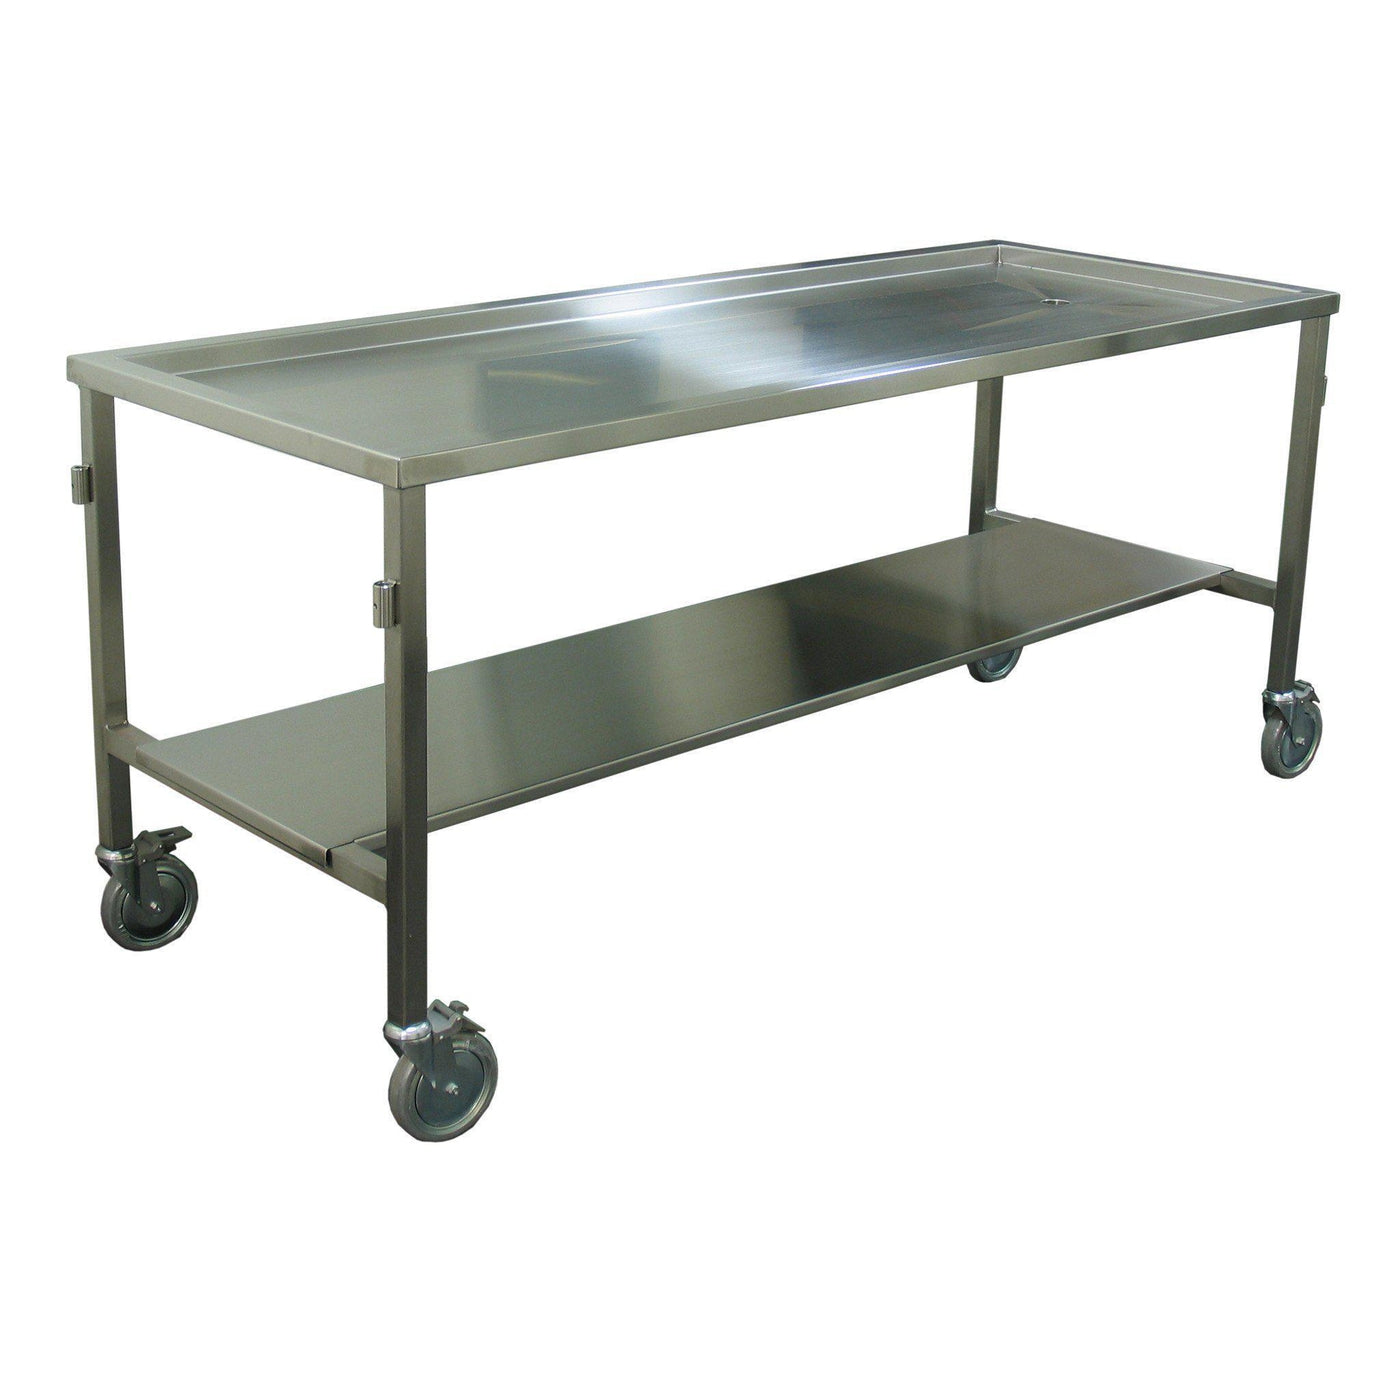 Standard Dissection Table-Anatomy Dissection Tables-Mortech Manufacturing Company Inc. Quality Stainless Steel Autopsy, Morgue, Funeral Home, Necropsy, Veterinary / Anatomy, Dissection Equipment and Accessories